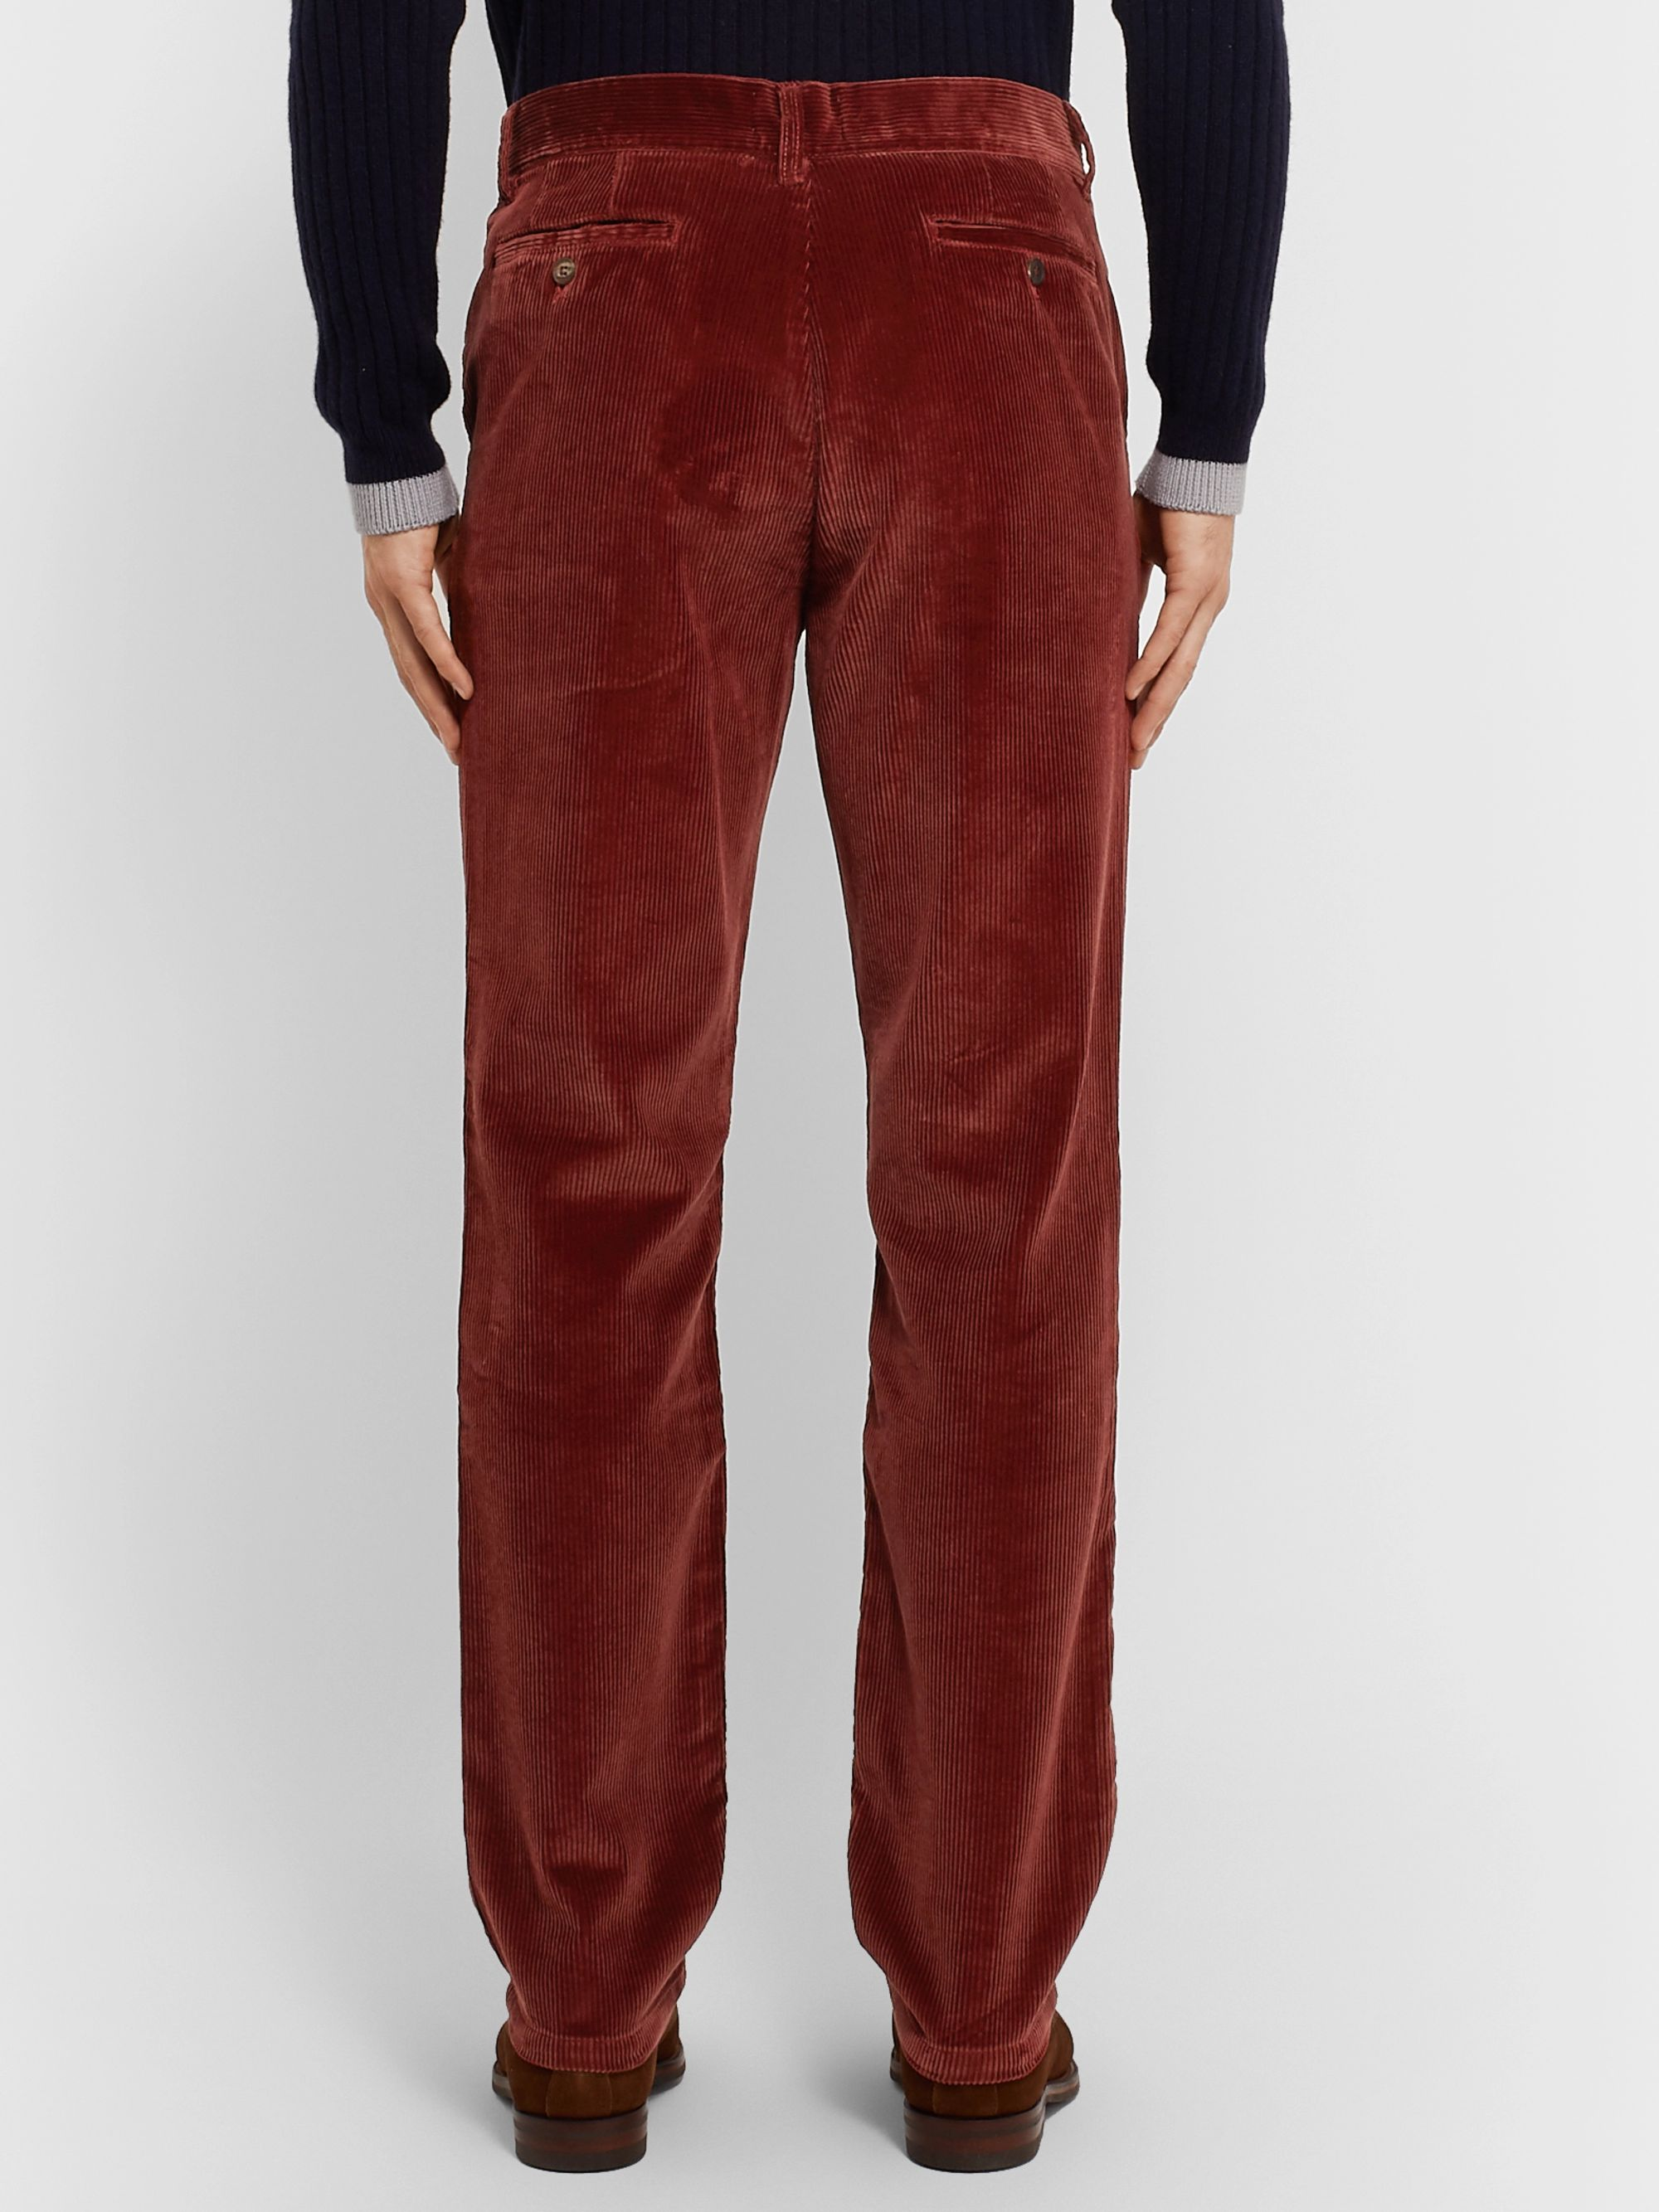 James Purdey & Sons Slim-Fit Cotton-Needlecord Trousers